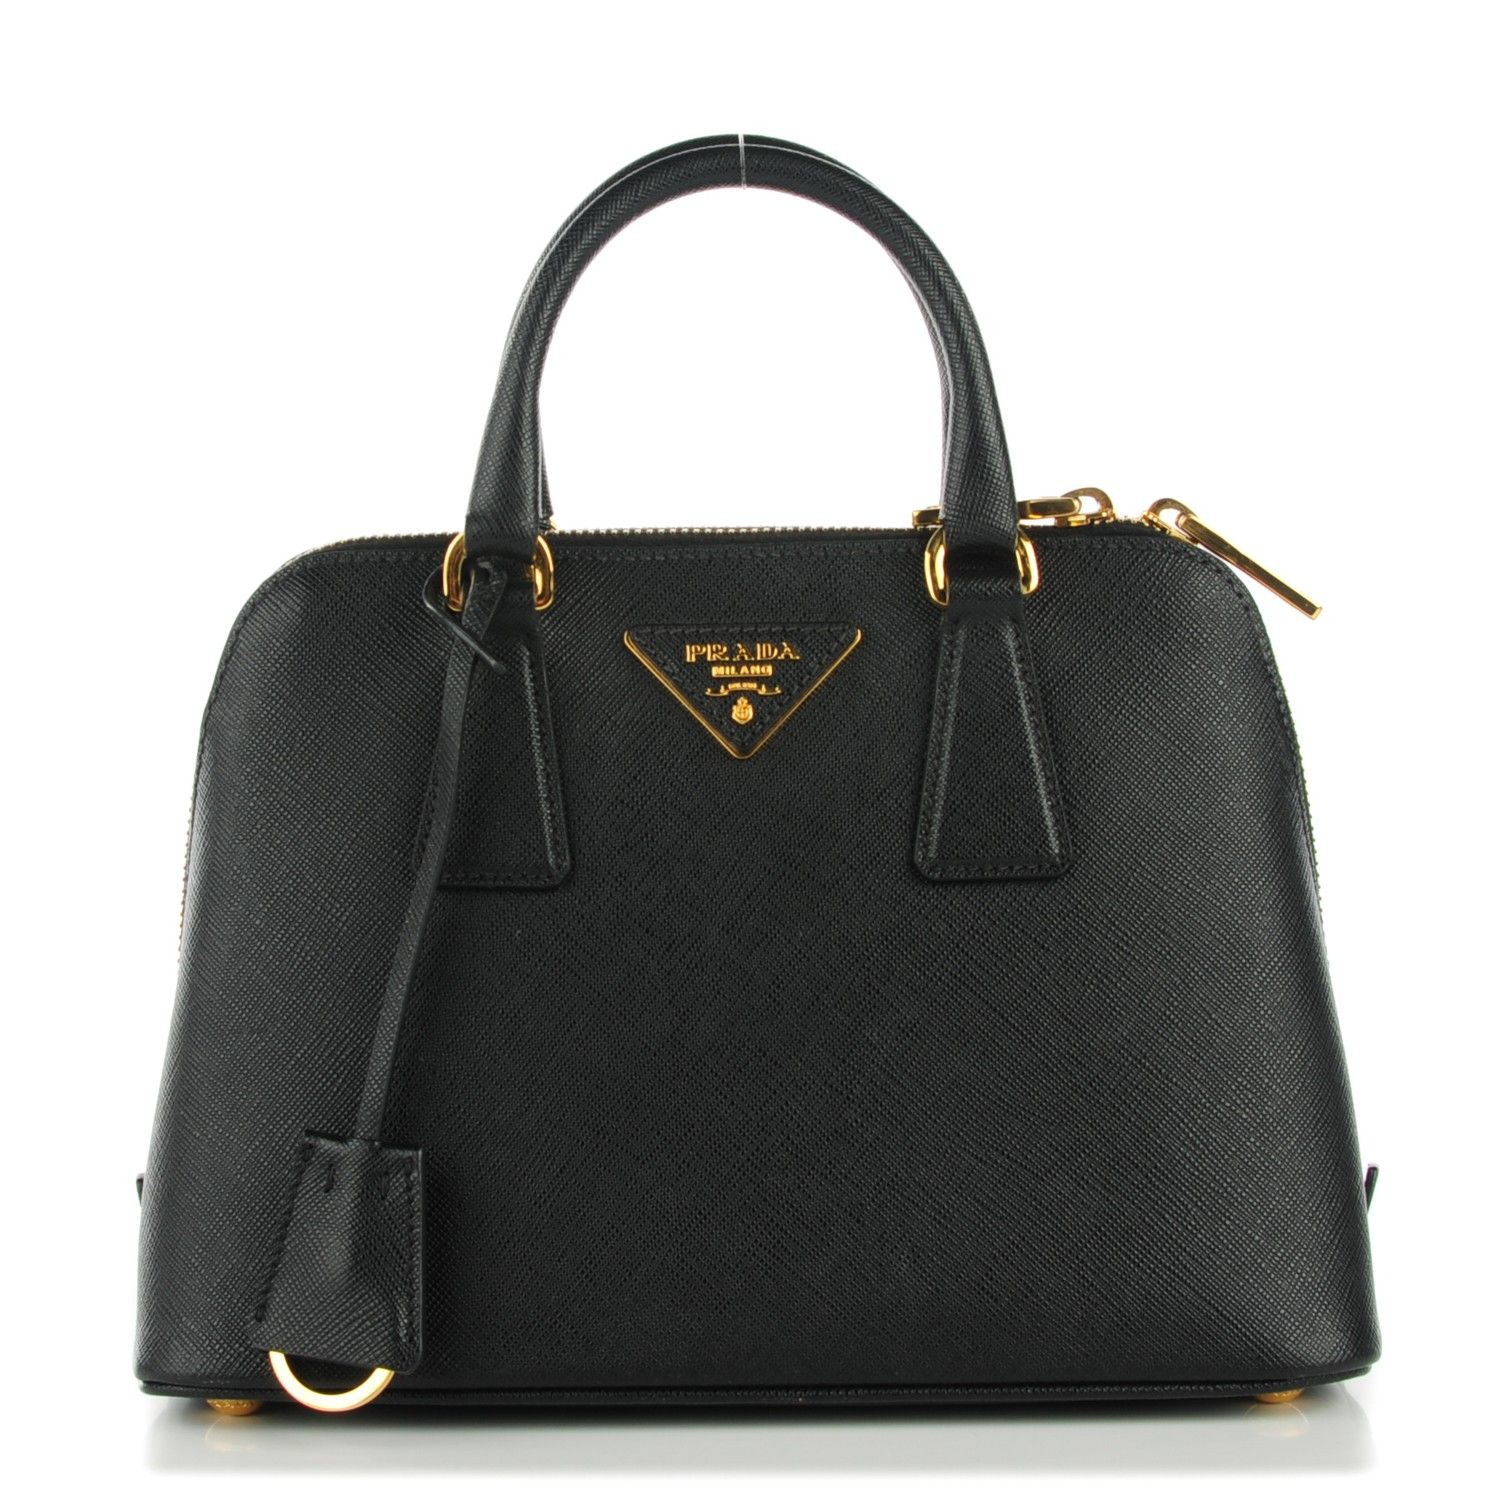 This is an authentic PRADA Saffiano Vernice Mini Promenade Nero Black.  This stunning tote is crafted of saffiano cross grain leather in black with gold hardware.  The bag features rolled leather top handles, an optional cross-body shoulder strap, and opens with a zipper  to partitioned jacquard interior with three compartments.  This is a marvelous tote, ideal for day as well as evening use, from Prada!